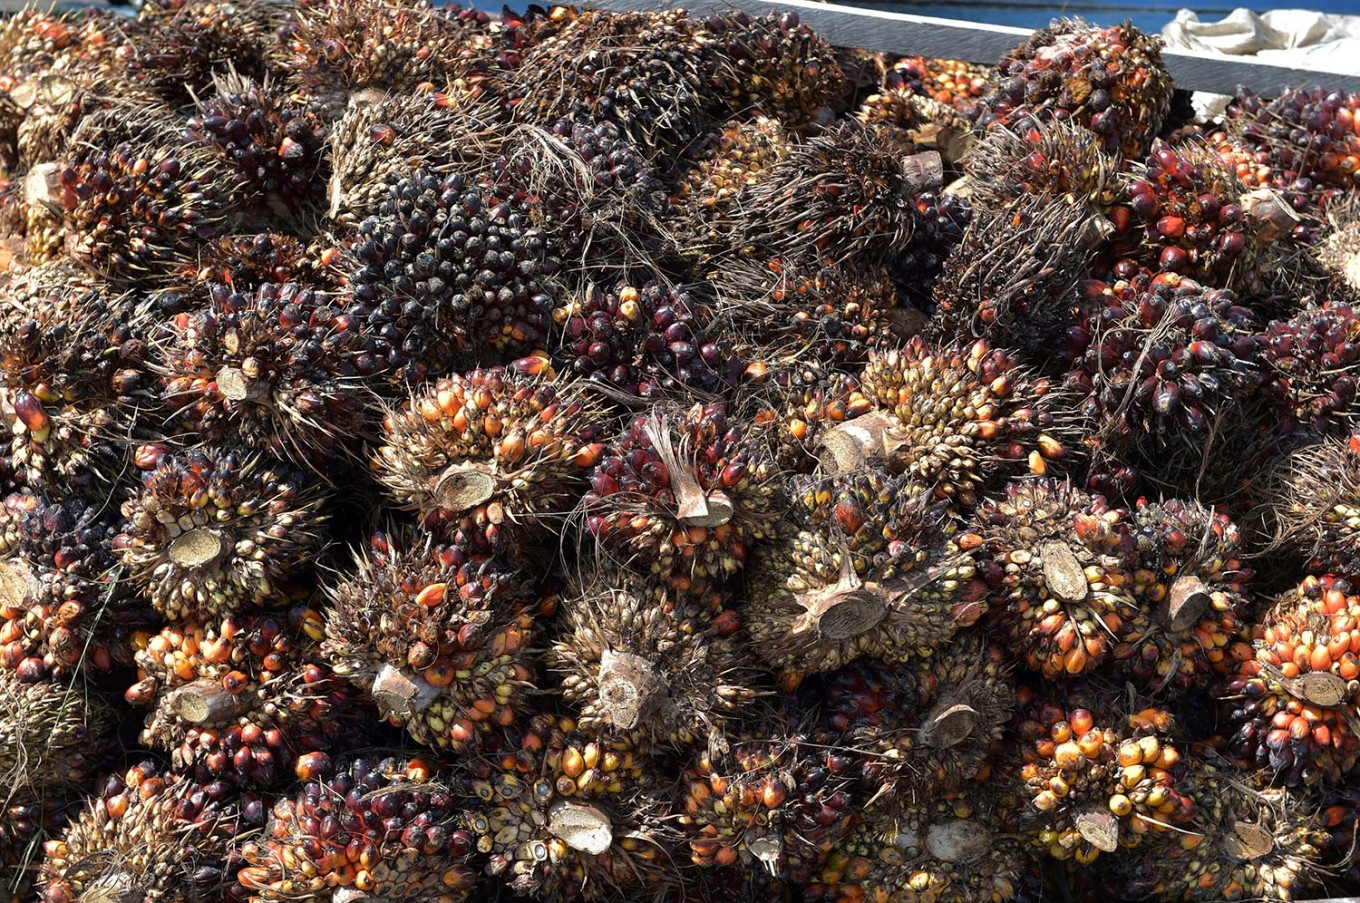 EU bases planned palm oil restriction on 2015 data